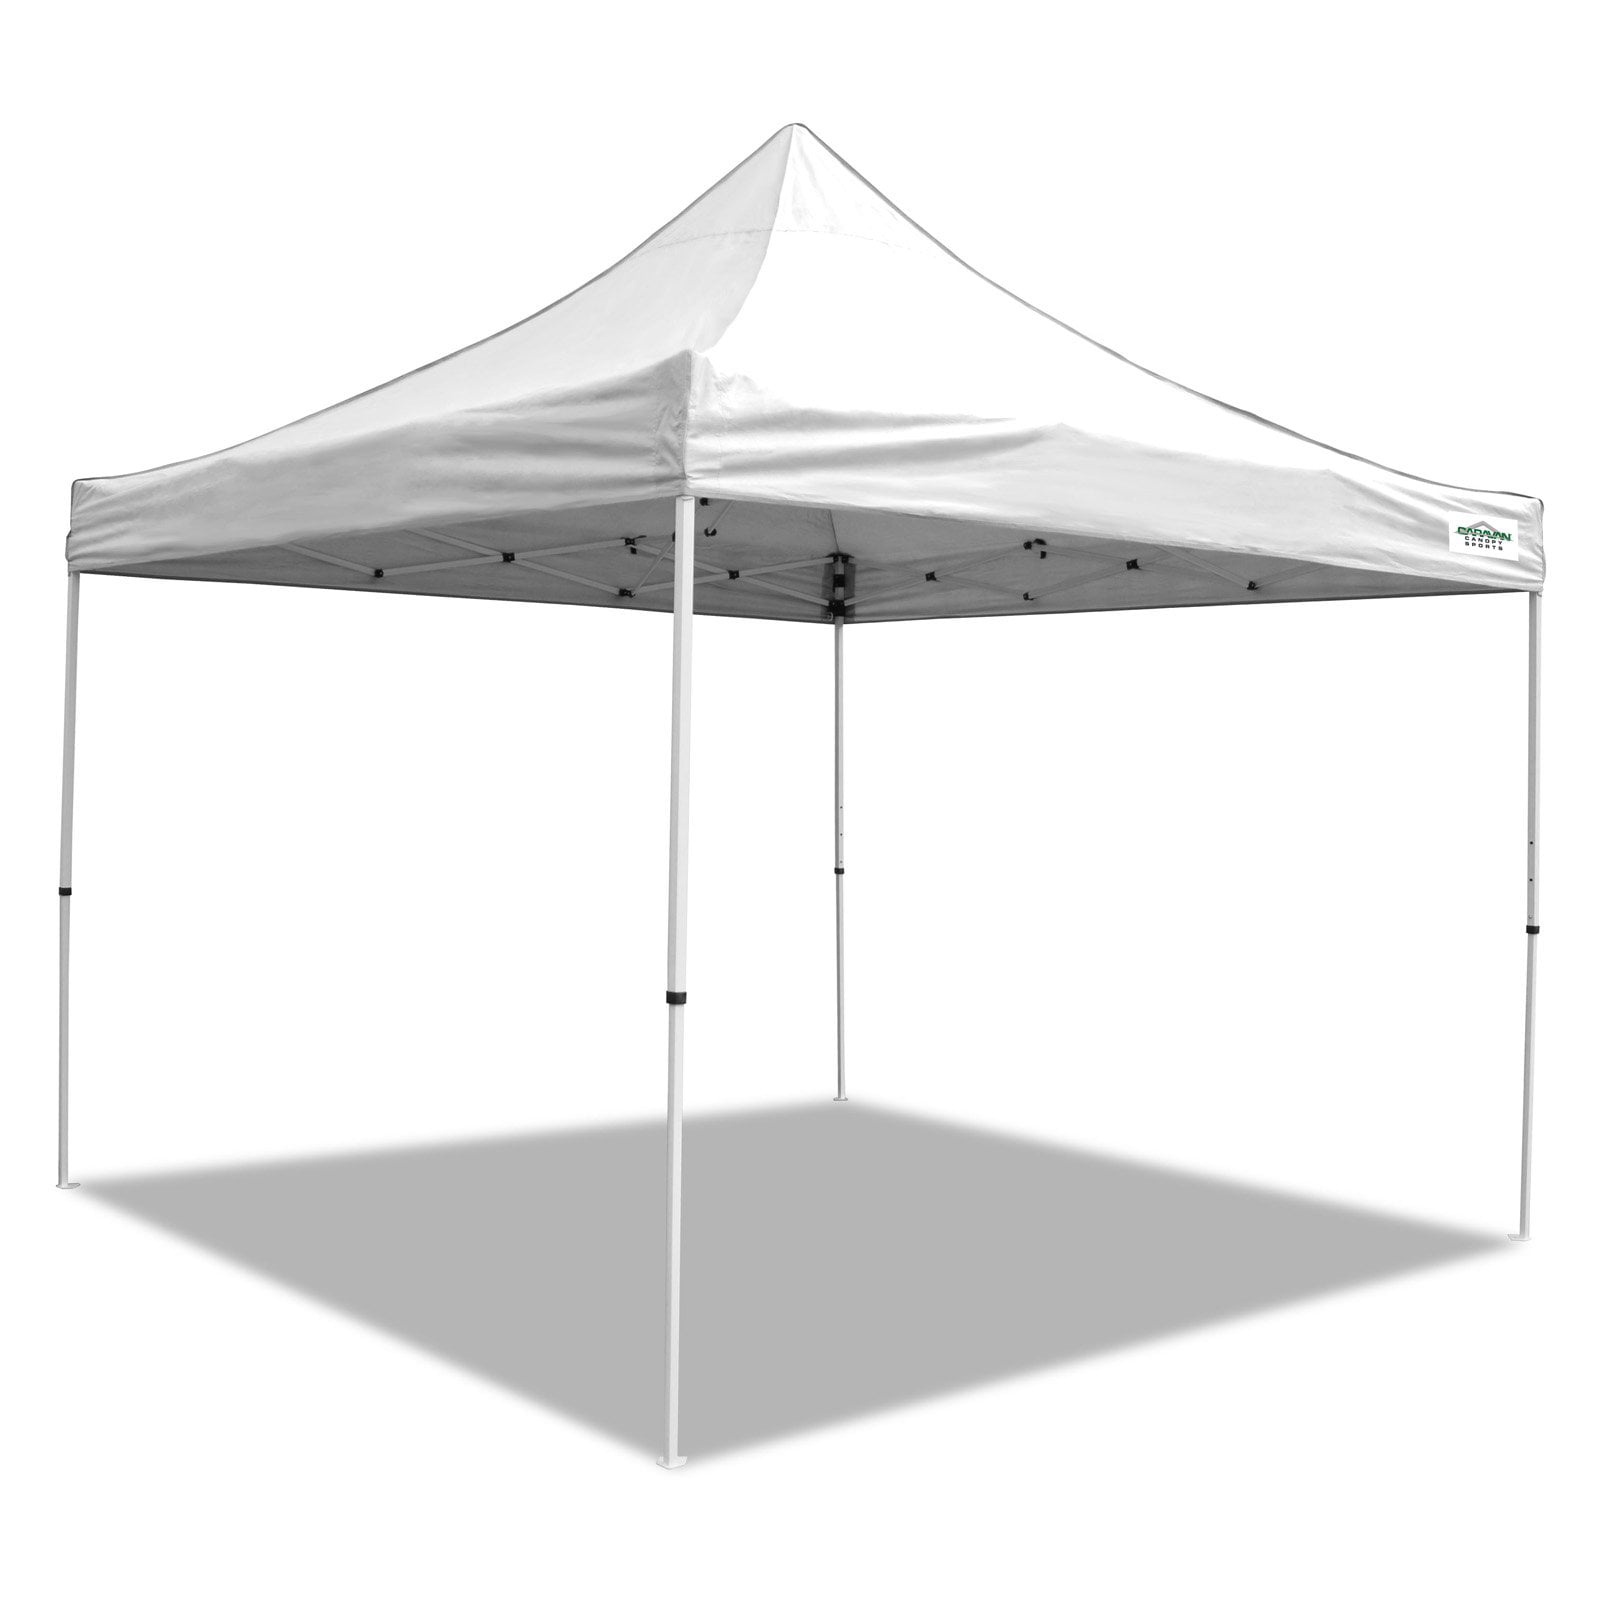 Caravan Canopy Sports 21208100010 12' X 12' White M-Series Pro Straight Canopy by Caravan Canopy Intl Inc